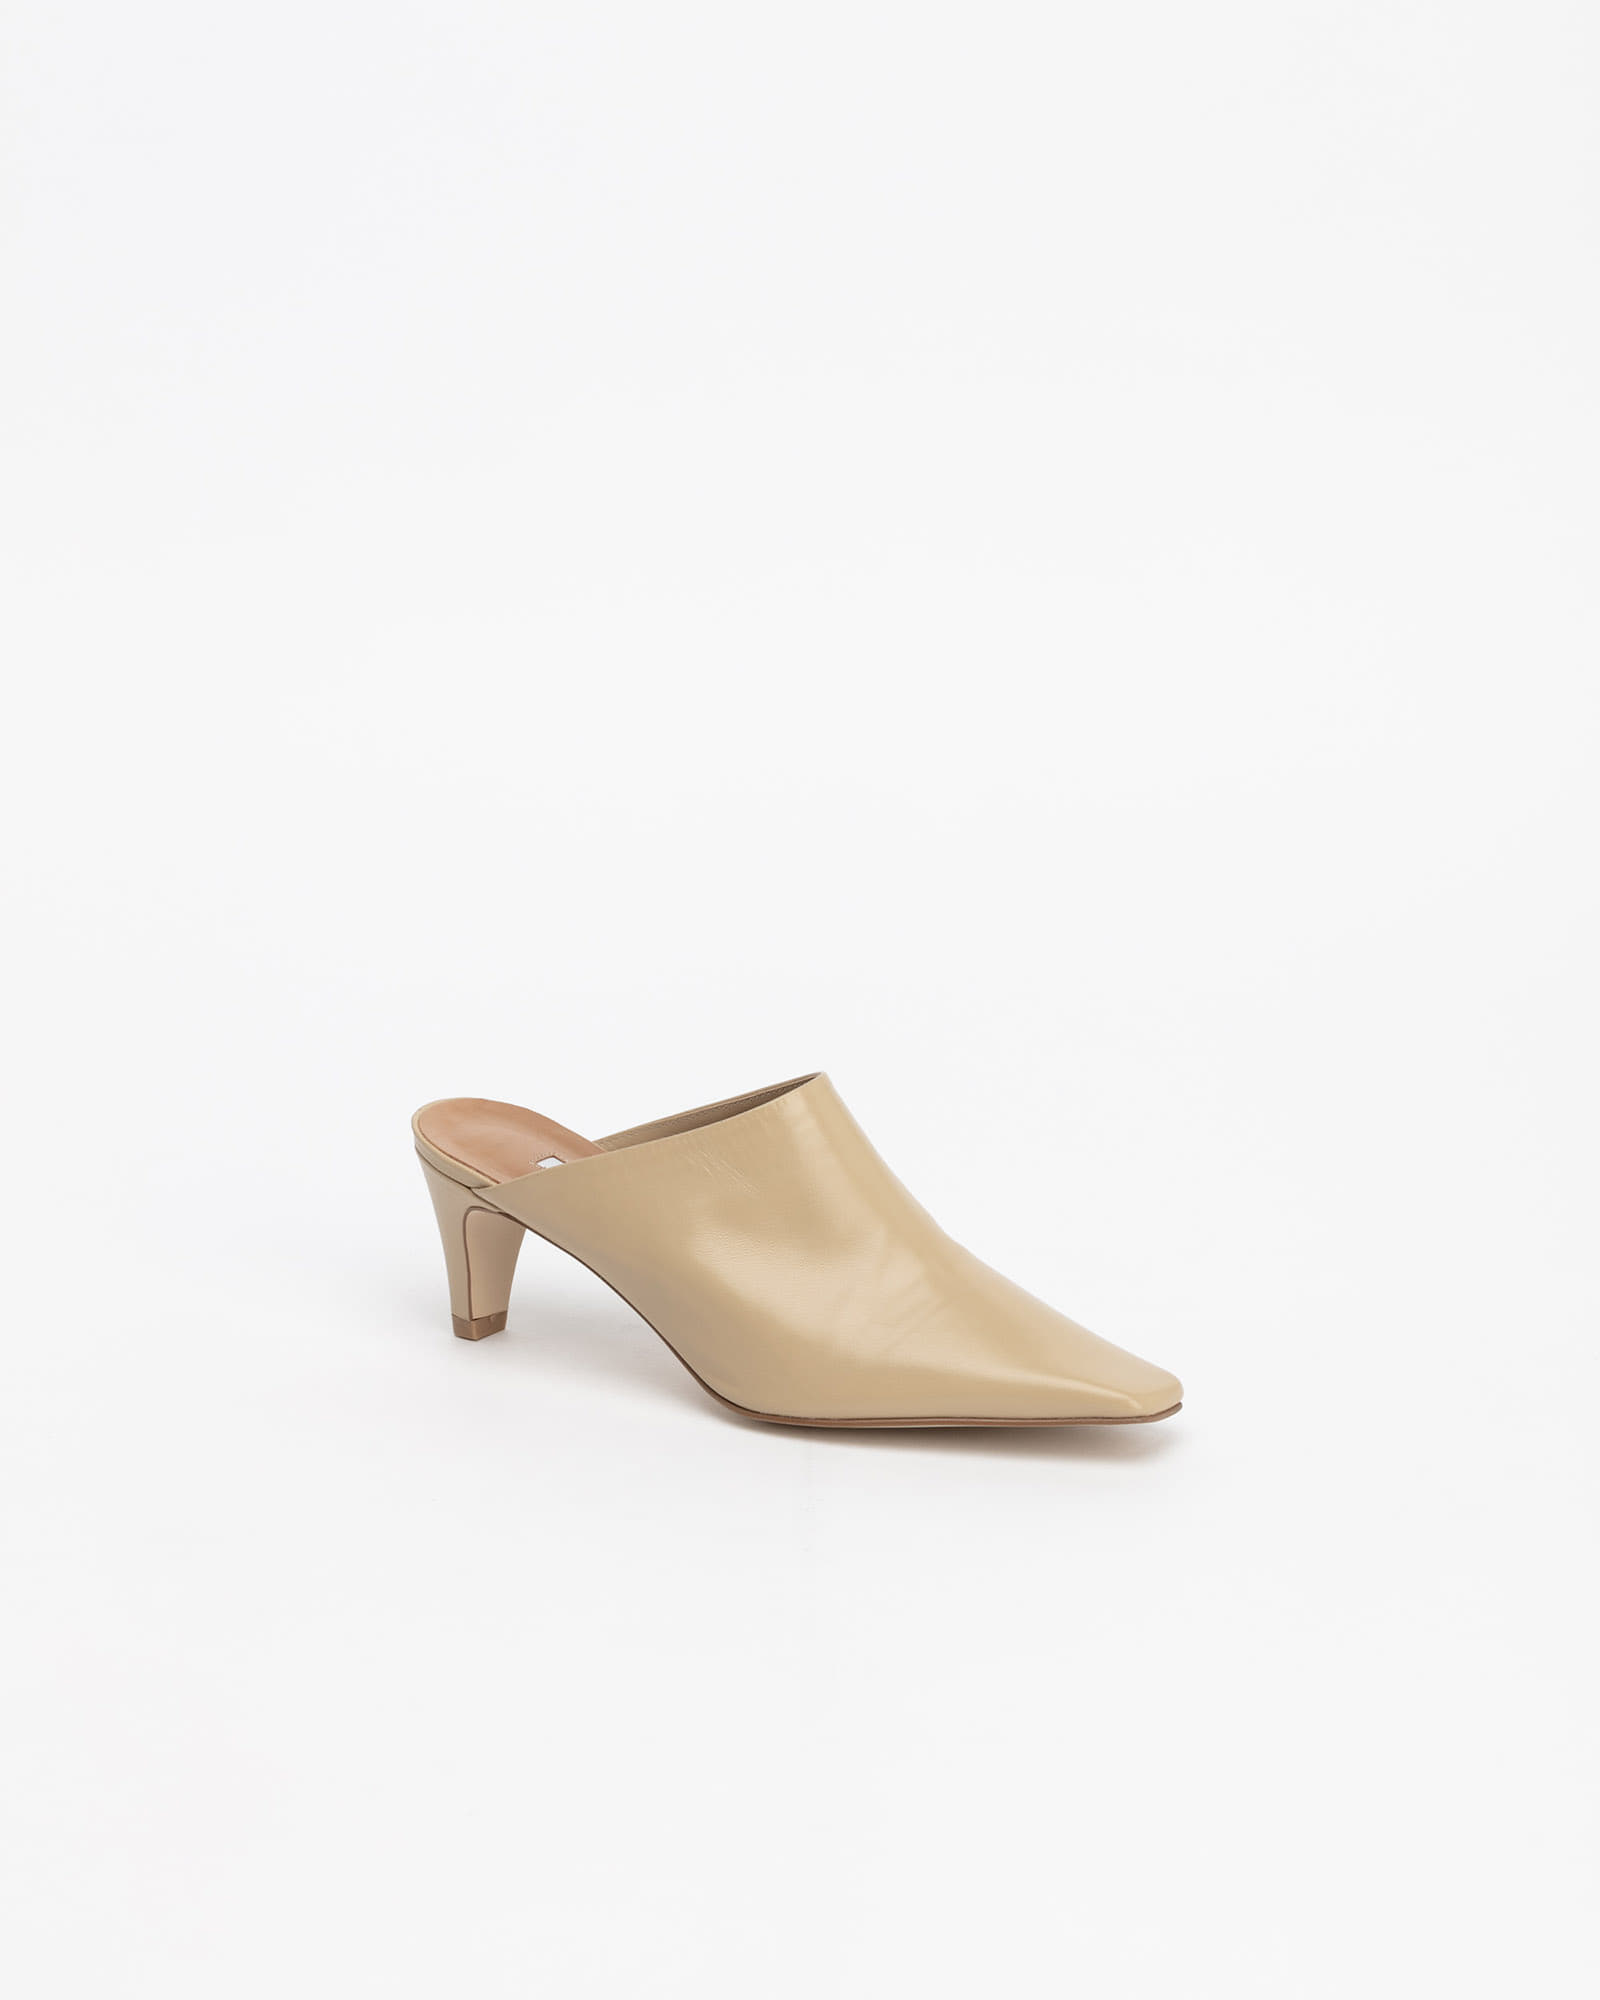 Ava Soft Mules in Yellow Beige